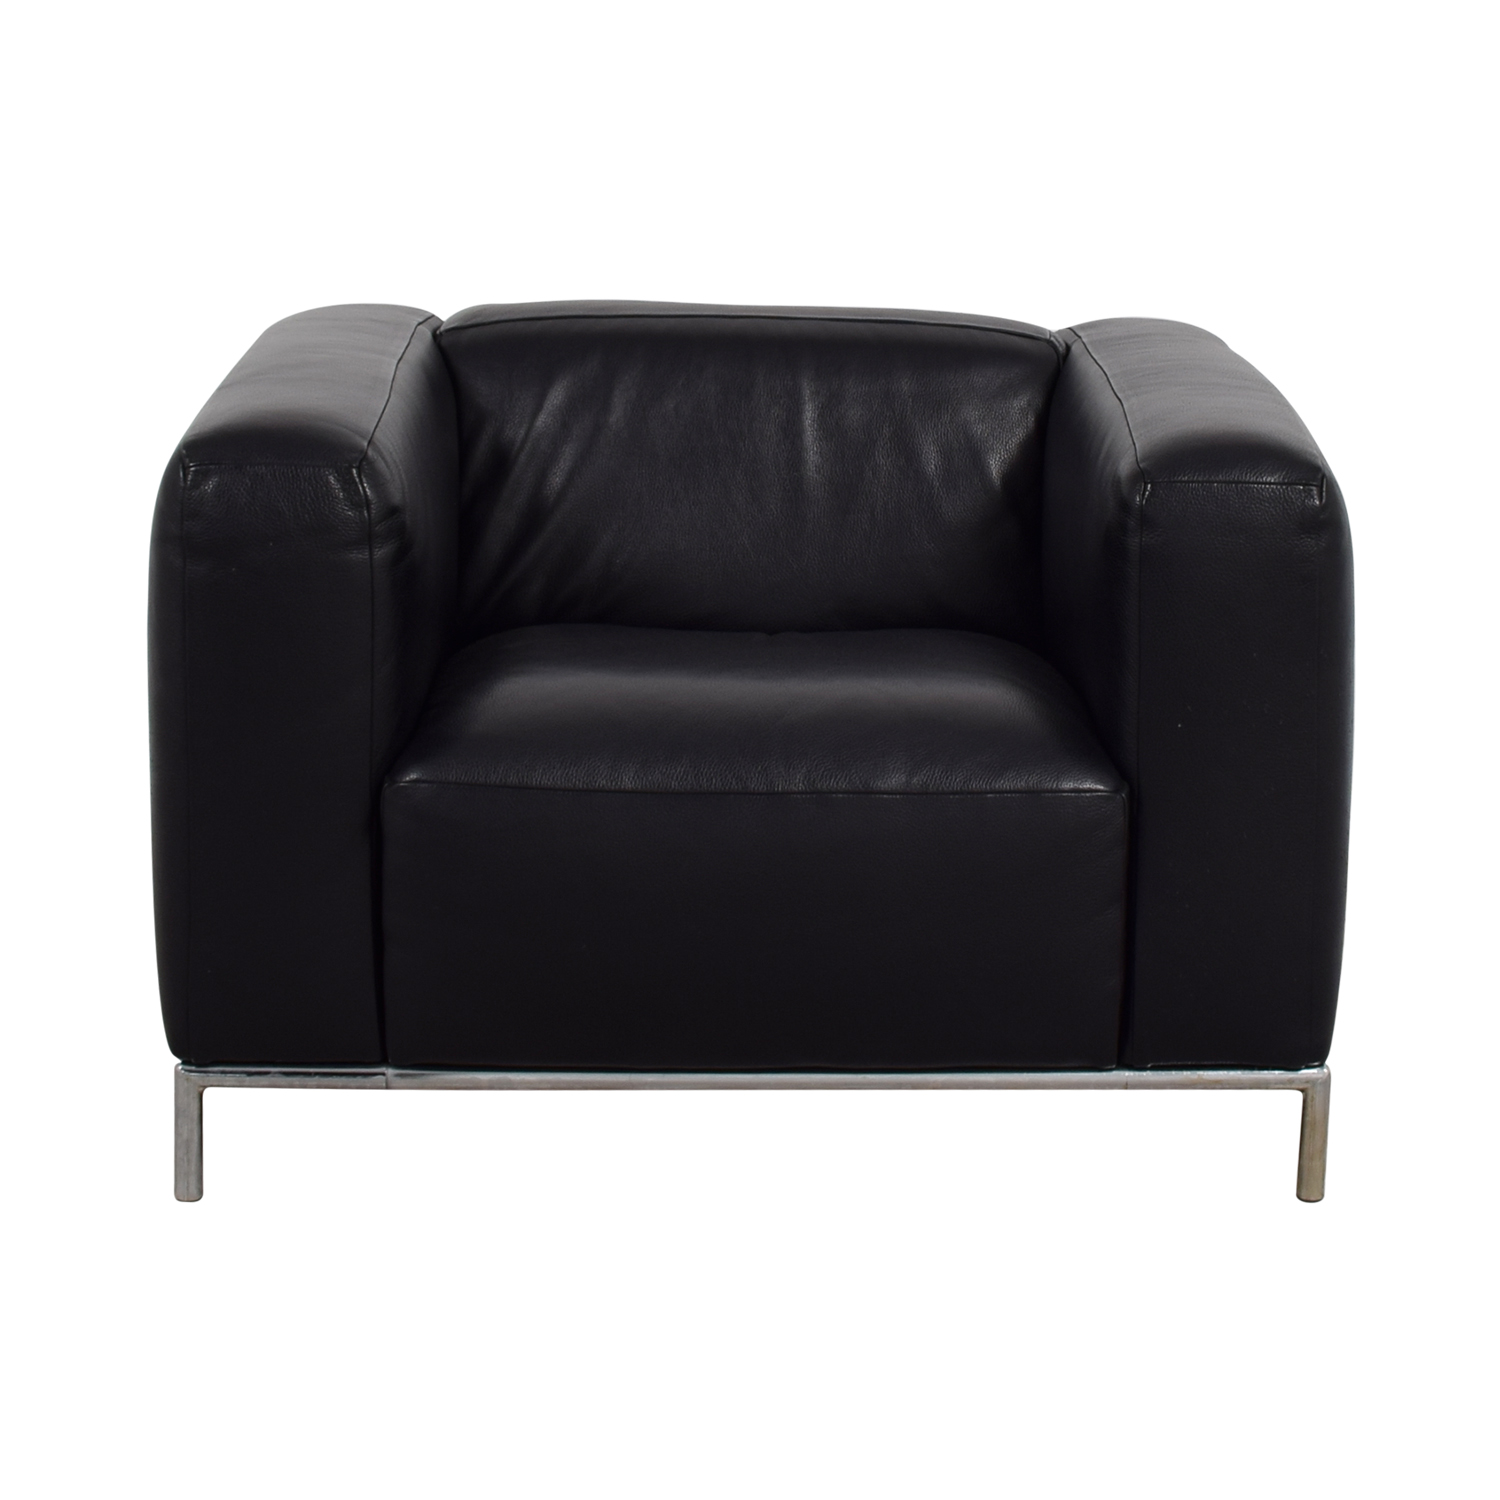 84 Off West Elm West Elm Black Leather Accent Chair